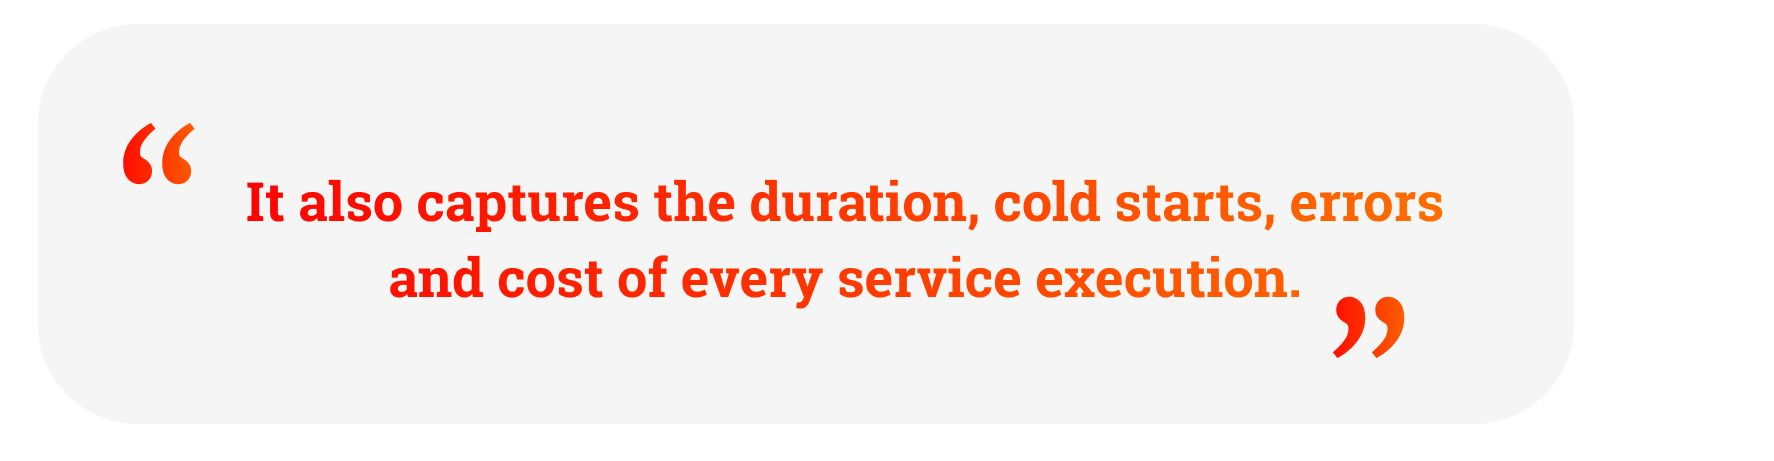 "Quote: ""It also captures the duration, cold starts, errors and cost of every service execution."""